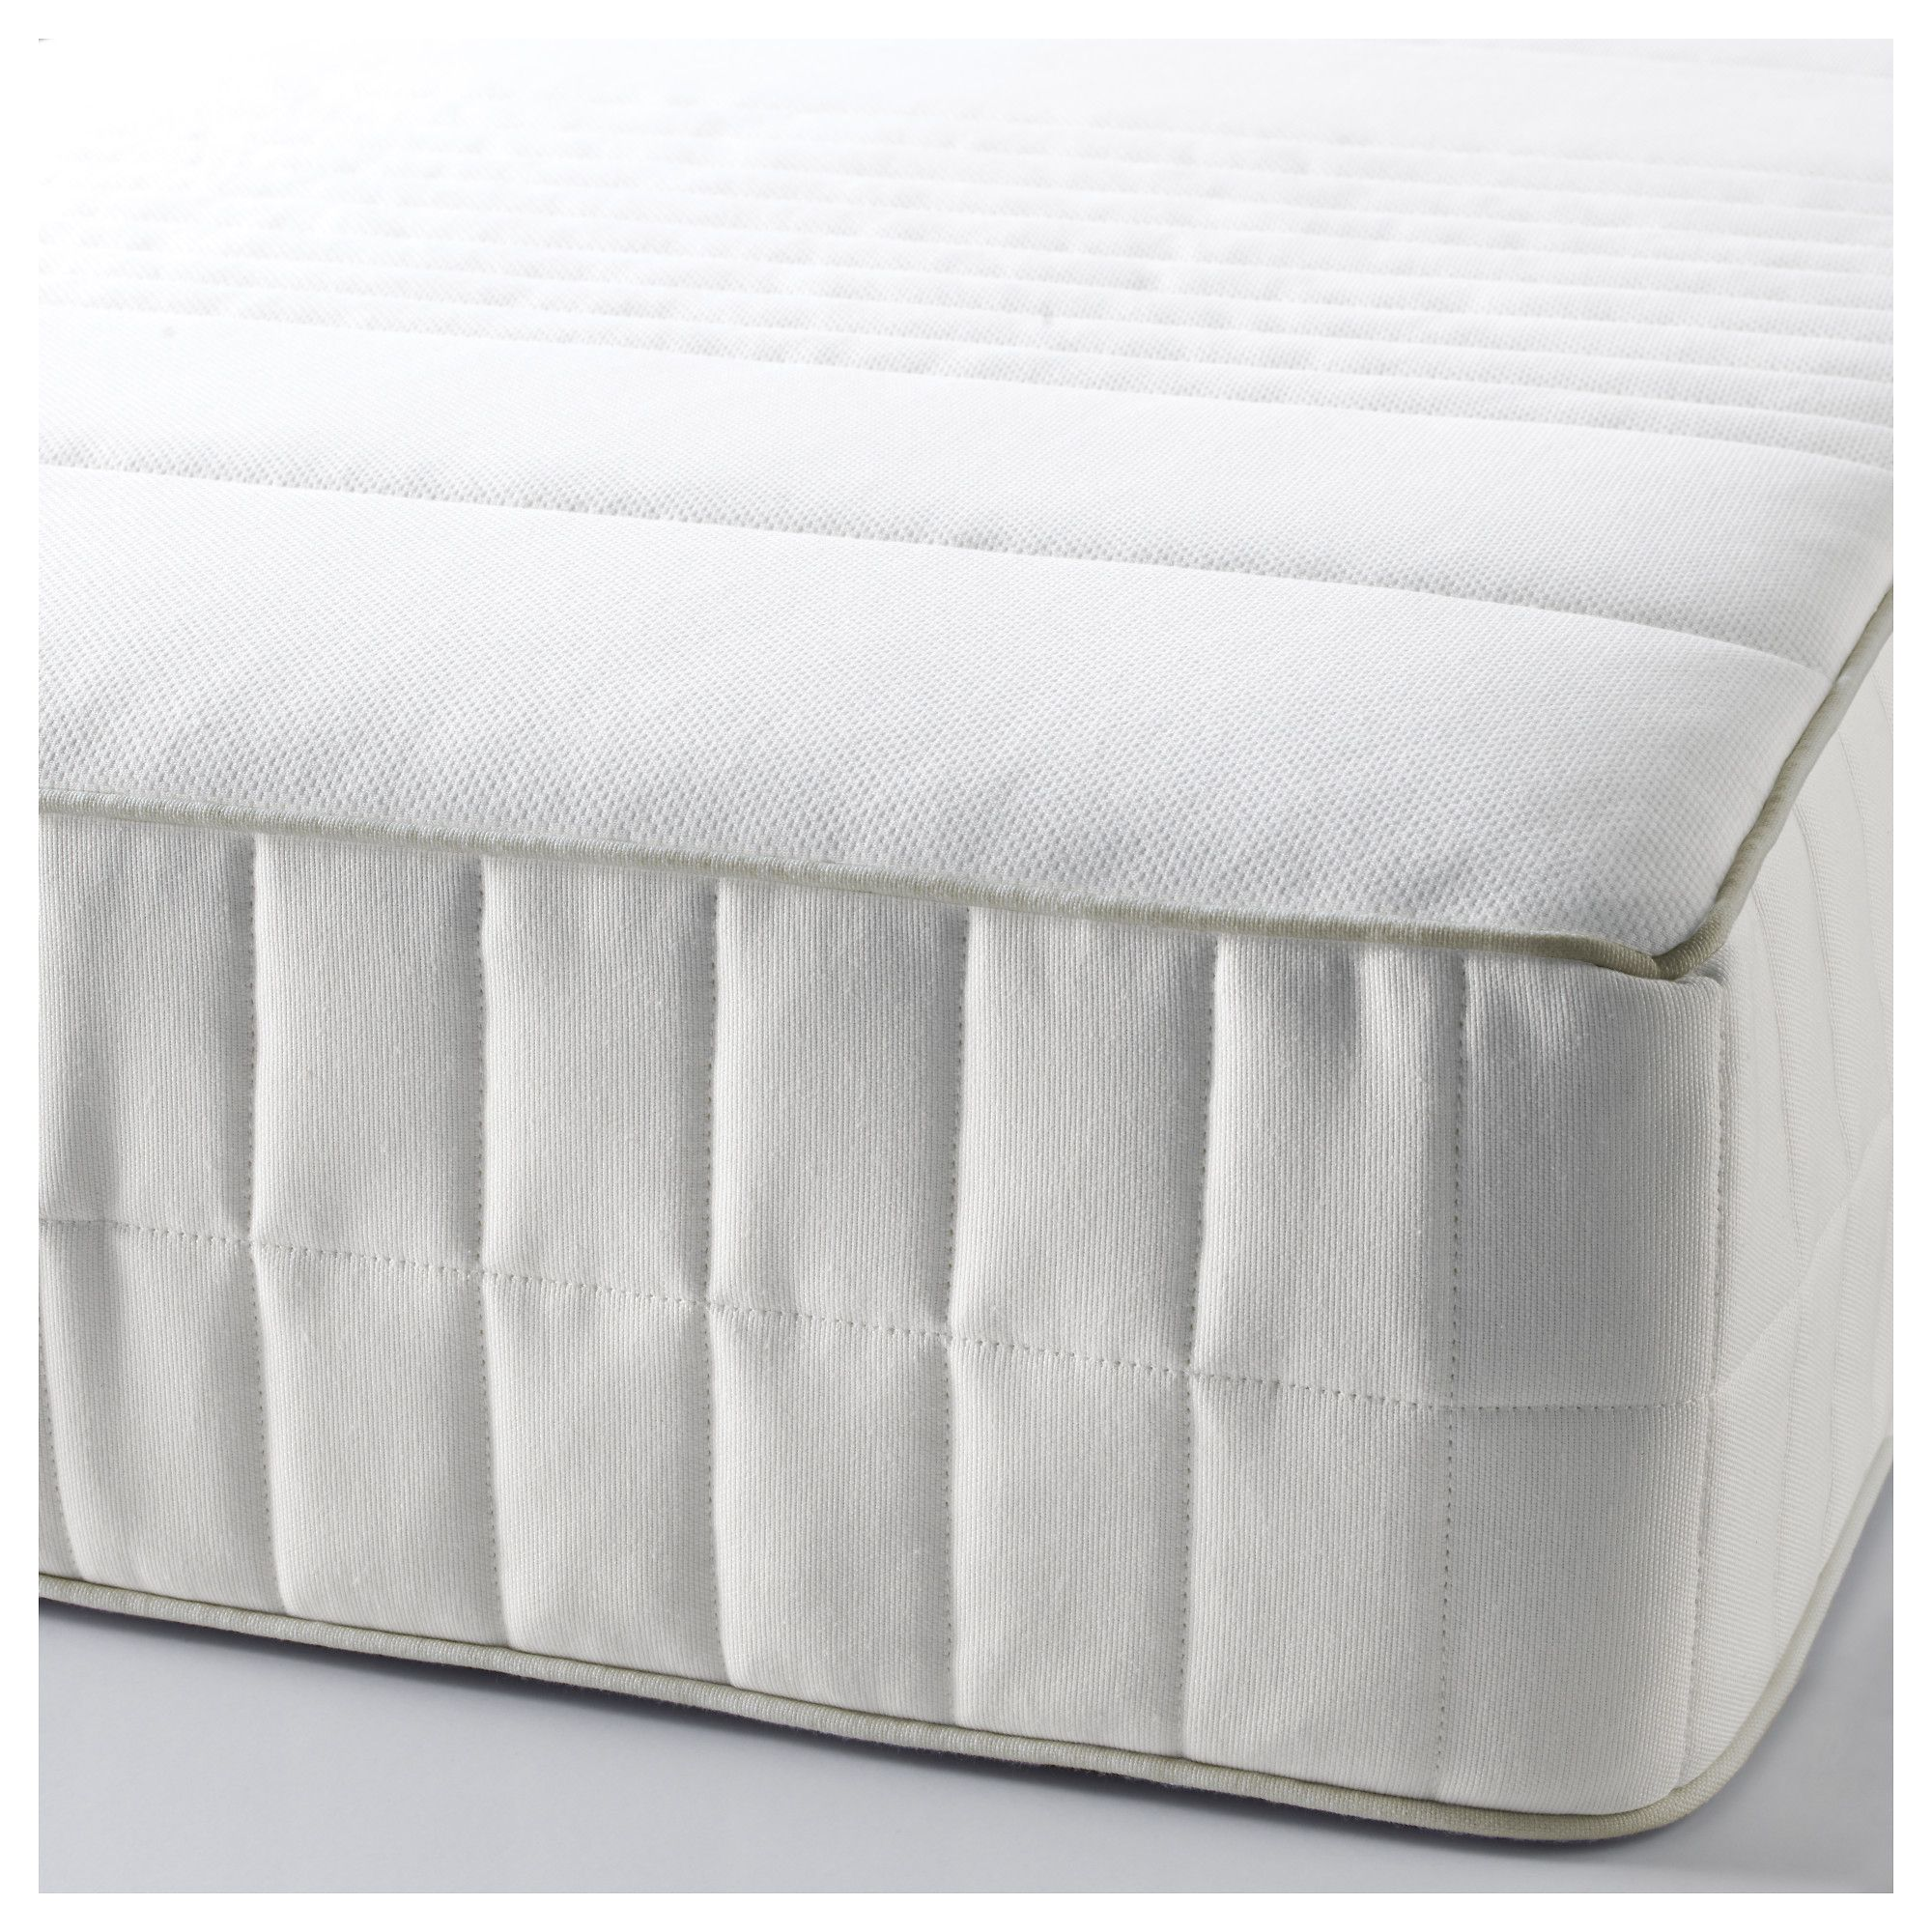 myrbacka latex mattress medium firm white latex mattress